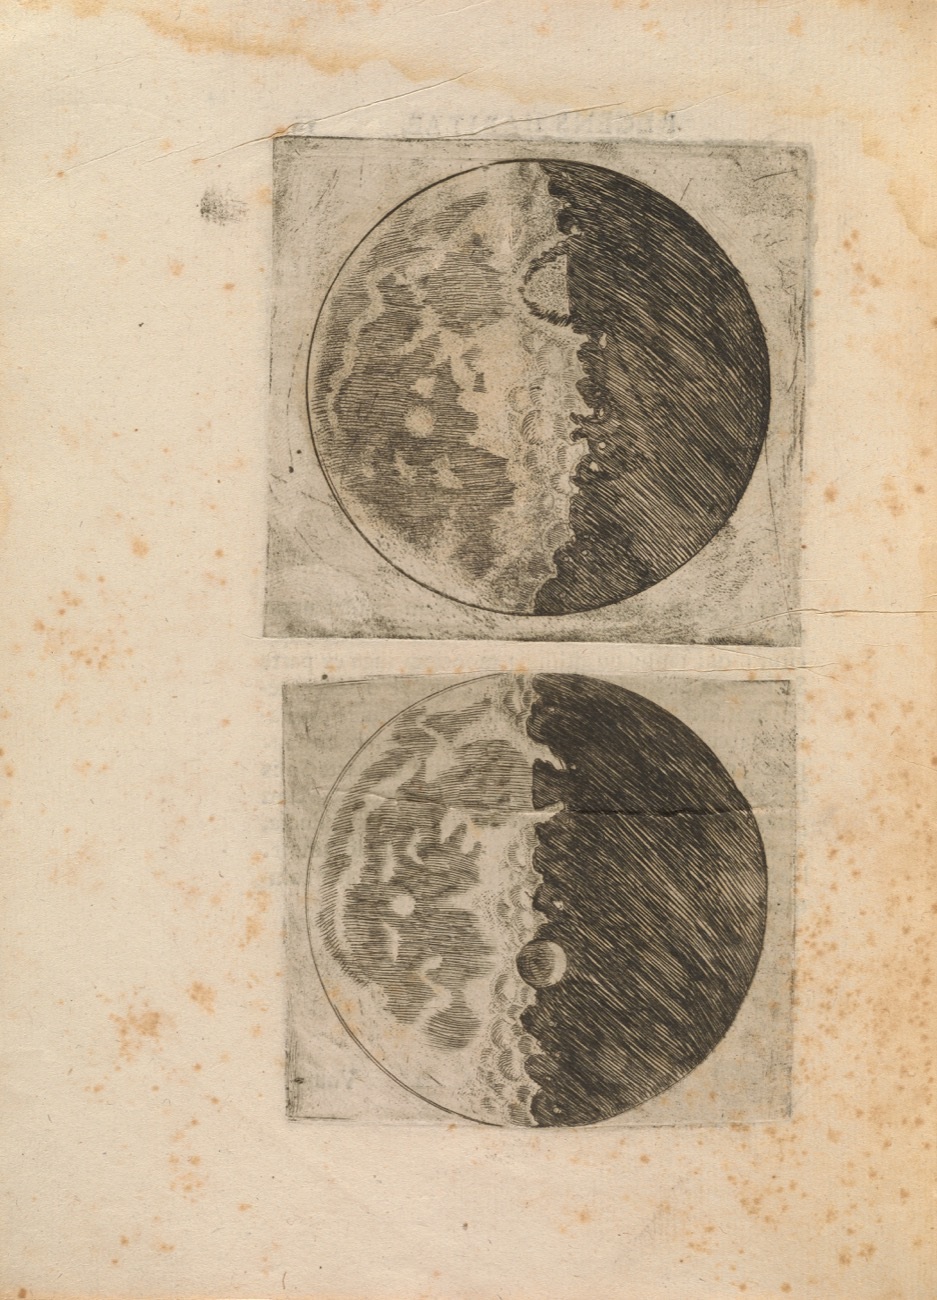 detailed line drawings of the moon on yellowed parchment paper